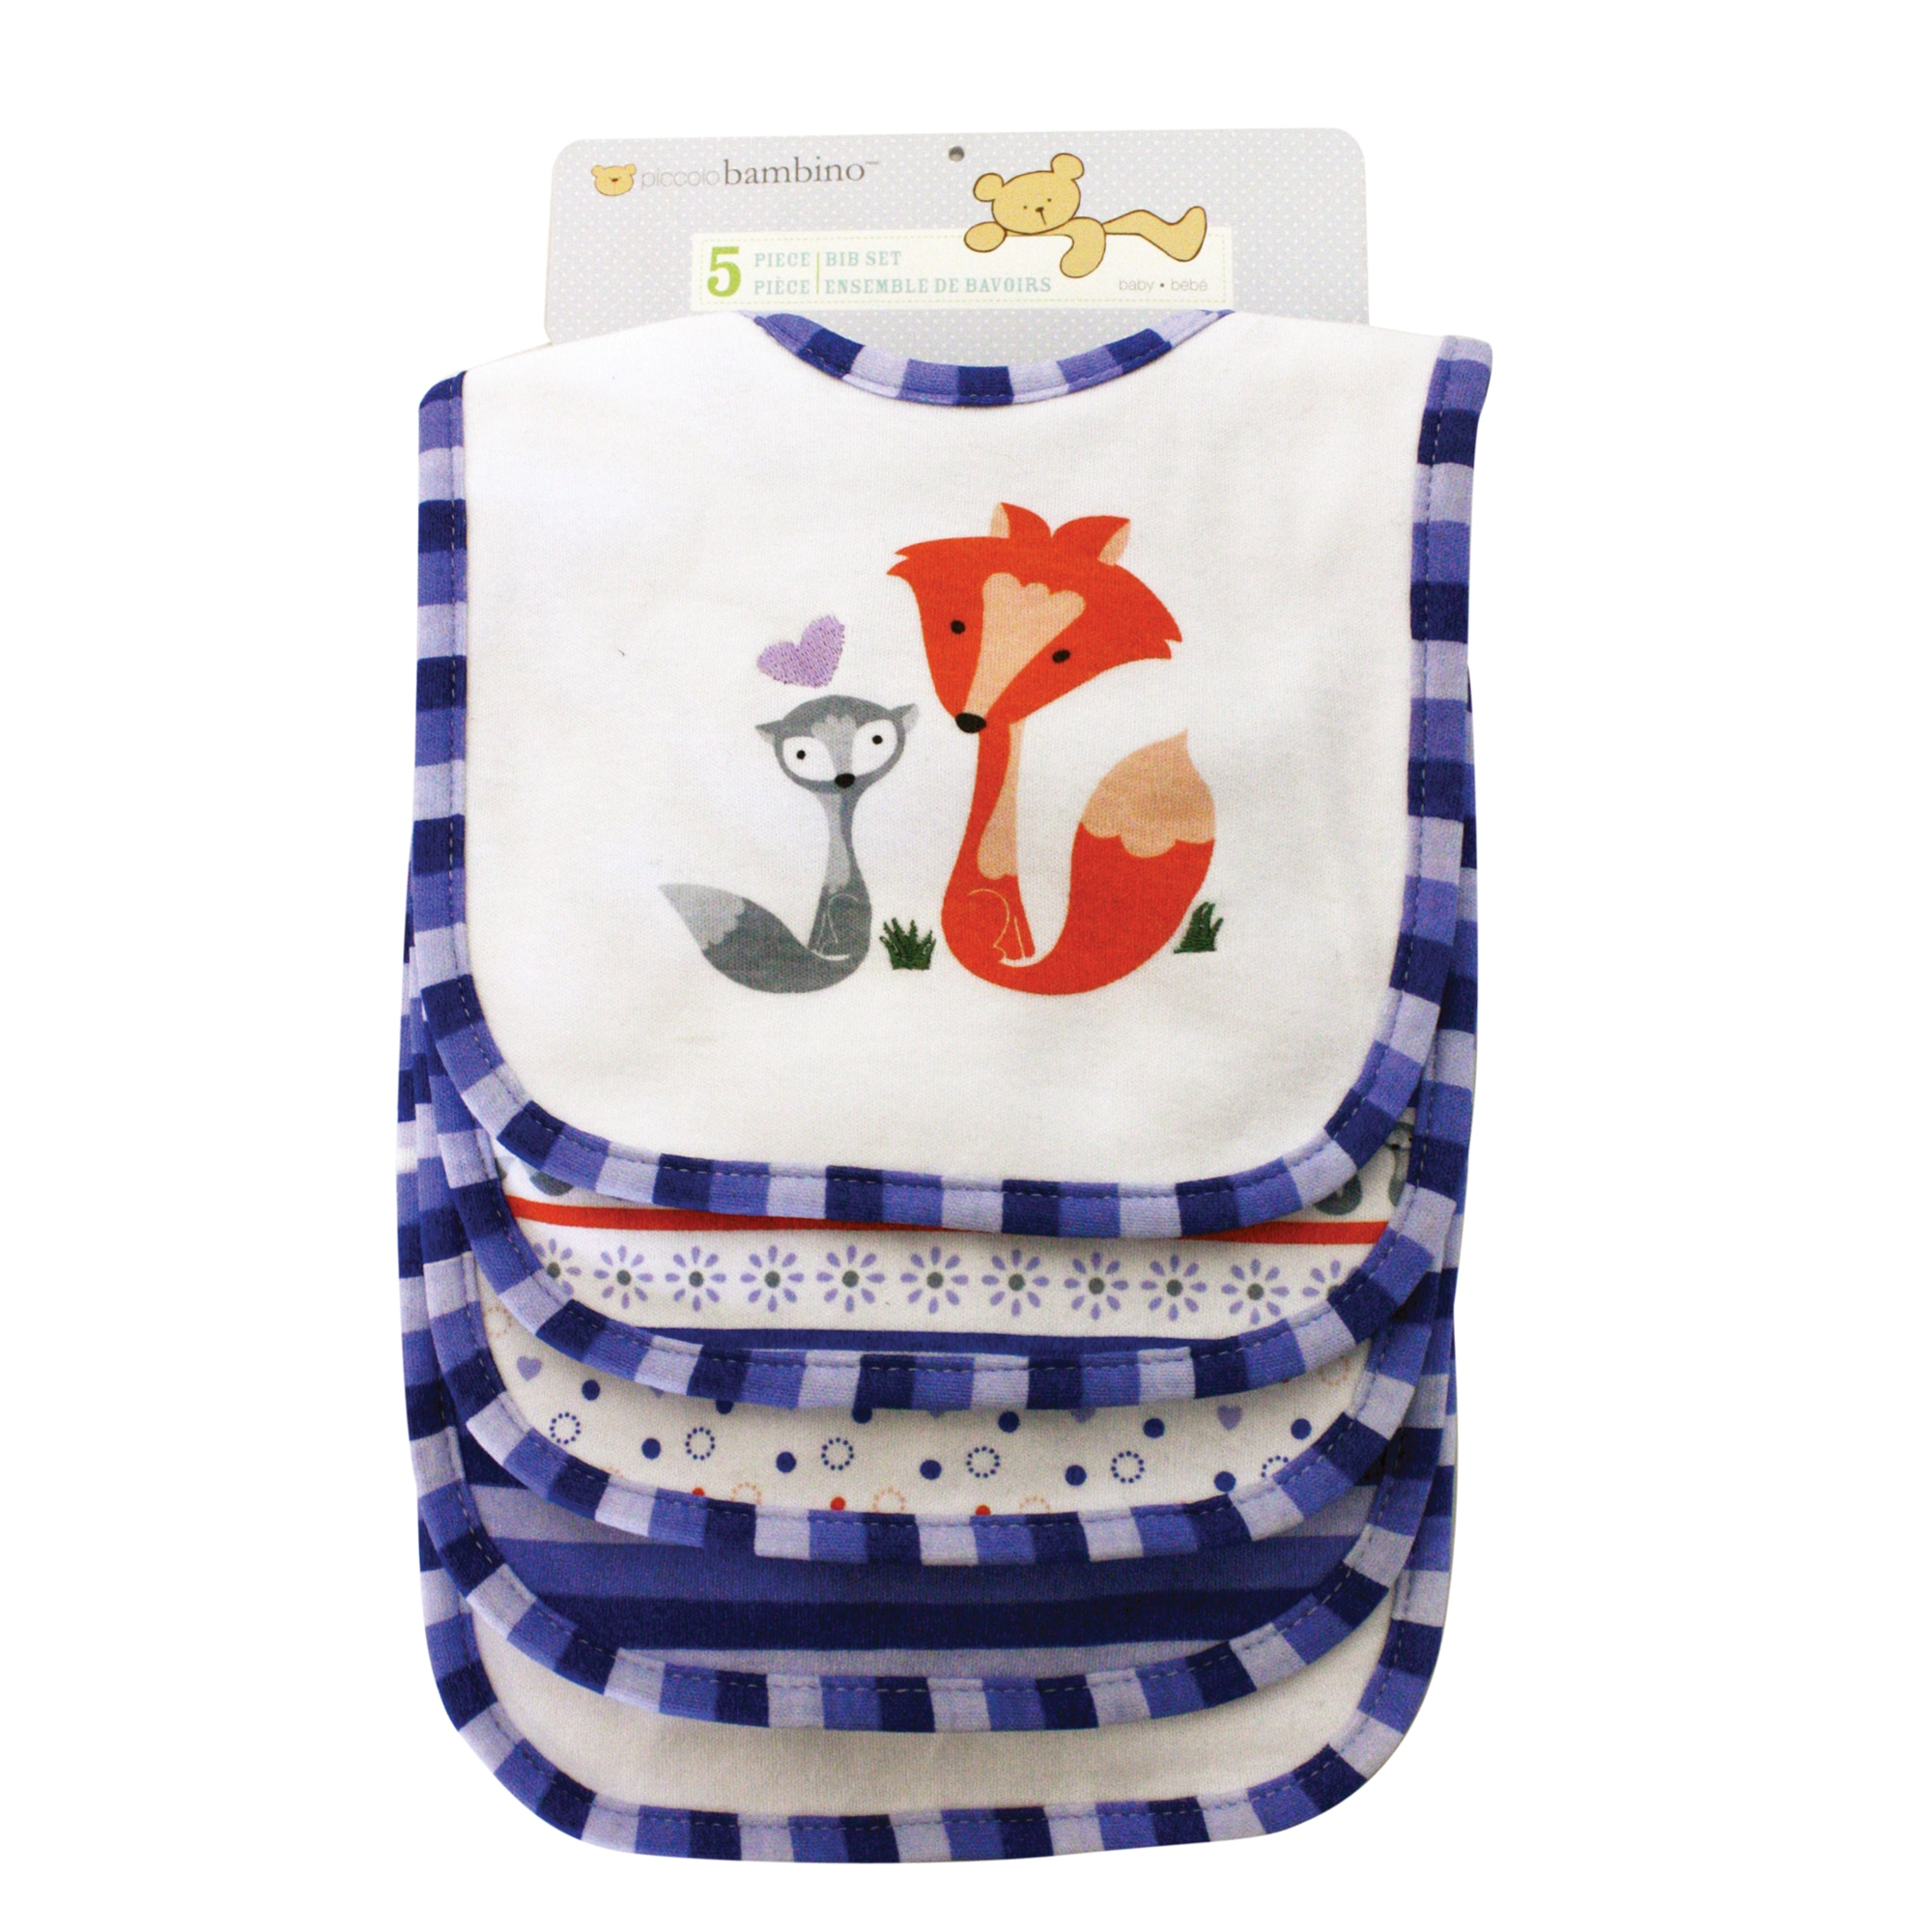 Piccolo Bambino Blue Cotton Bibs (Set of 5)